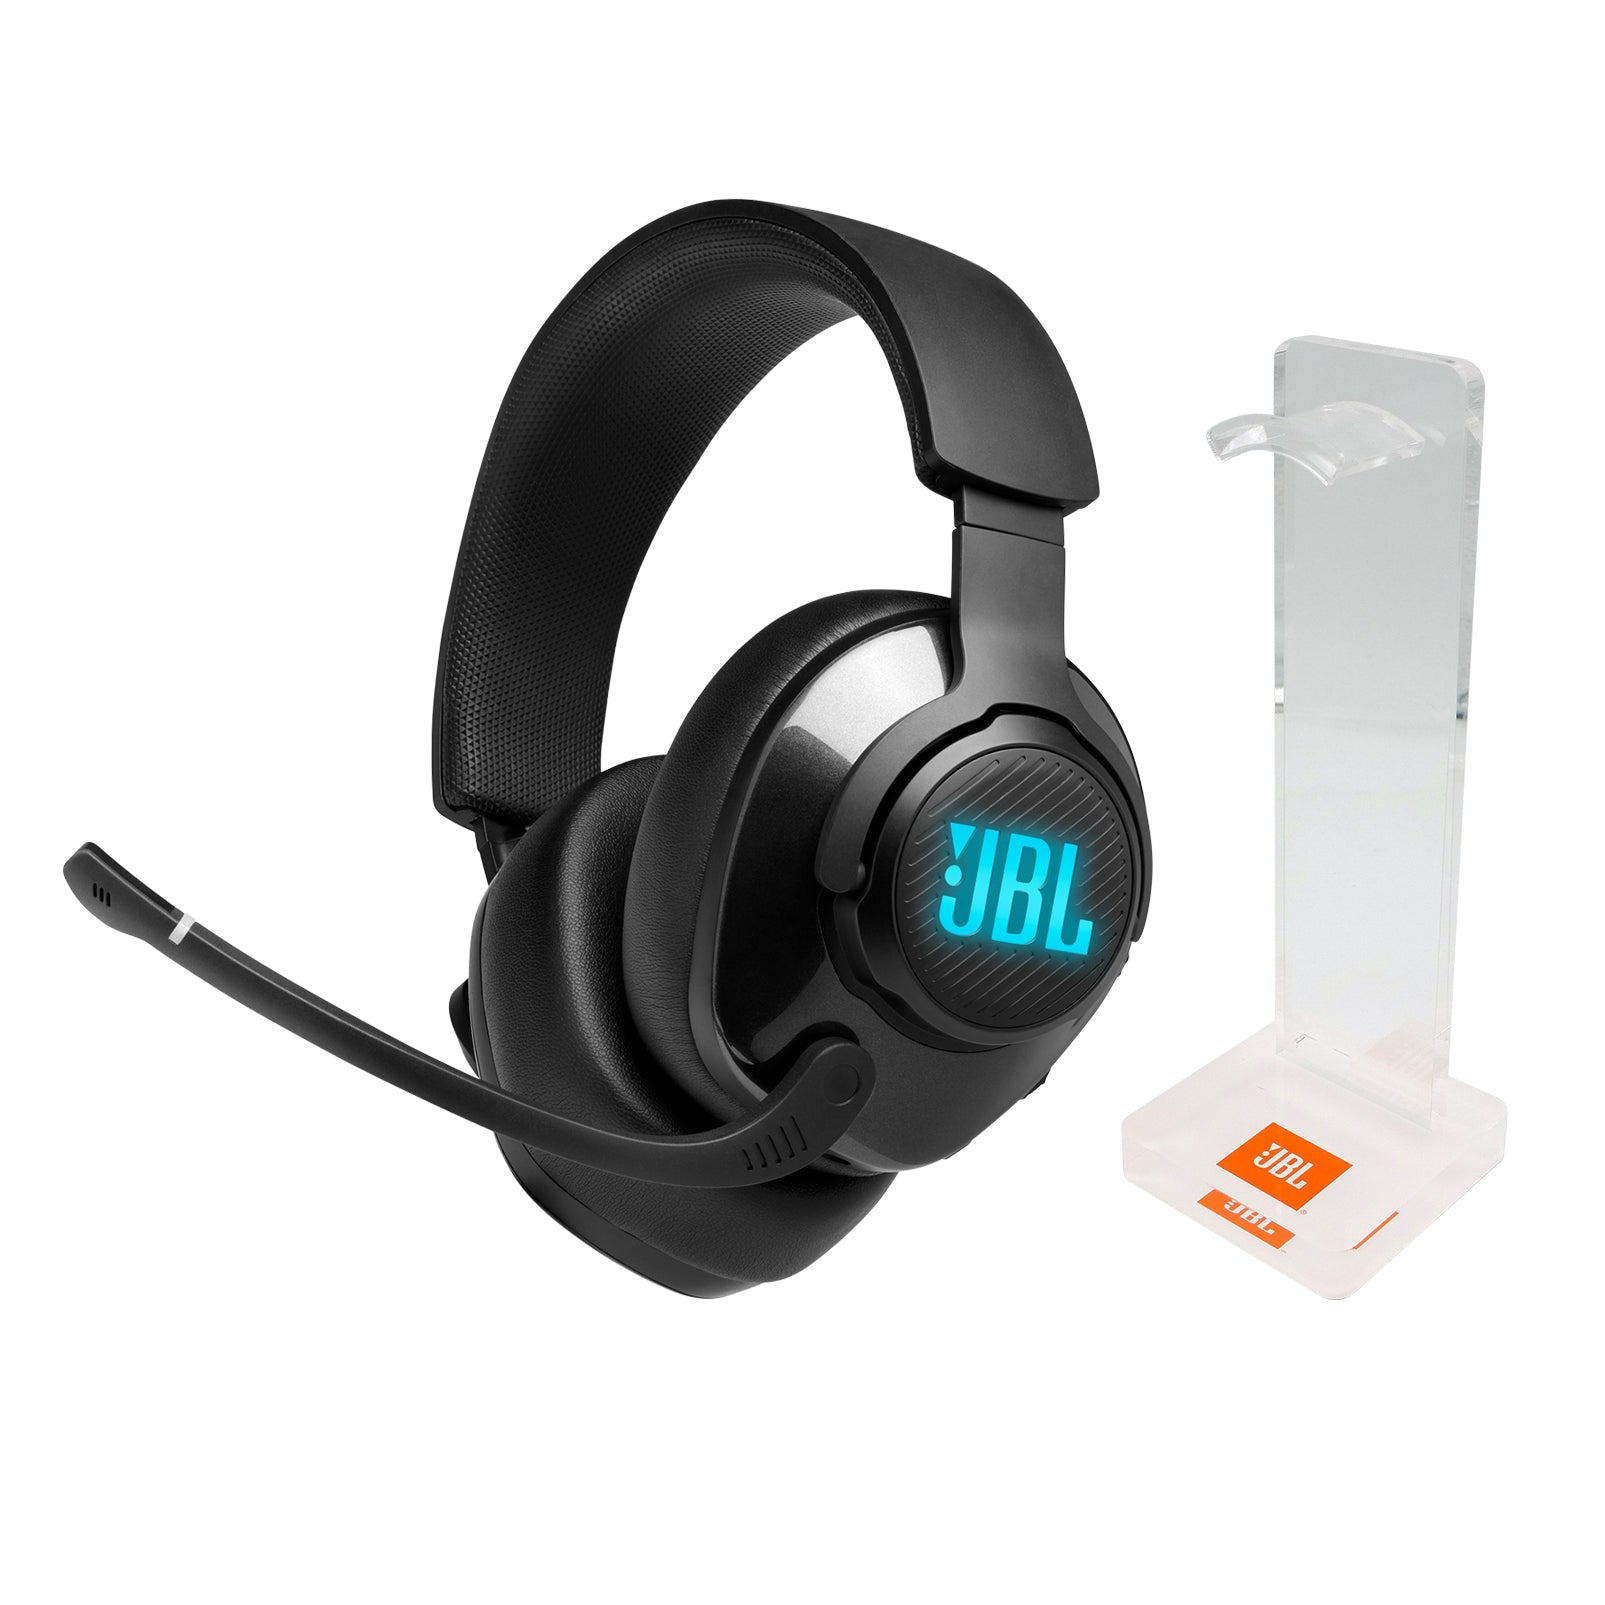 JBL Quantum 400 + JBL Headphone Stand